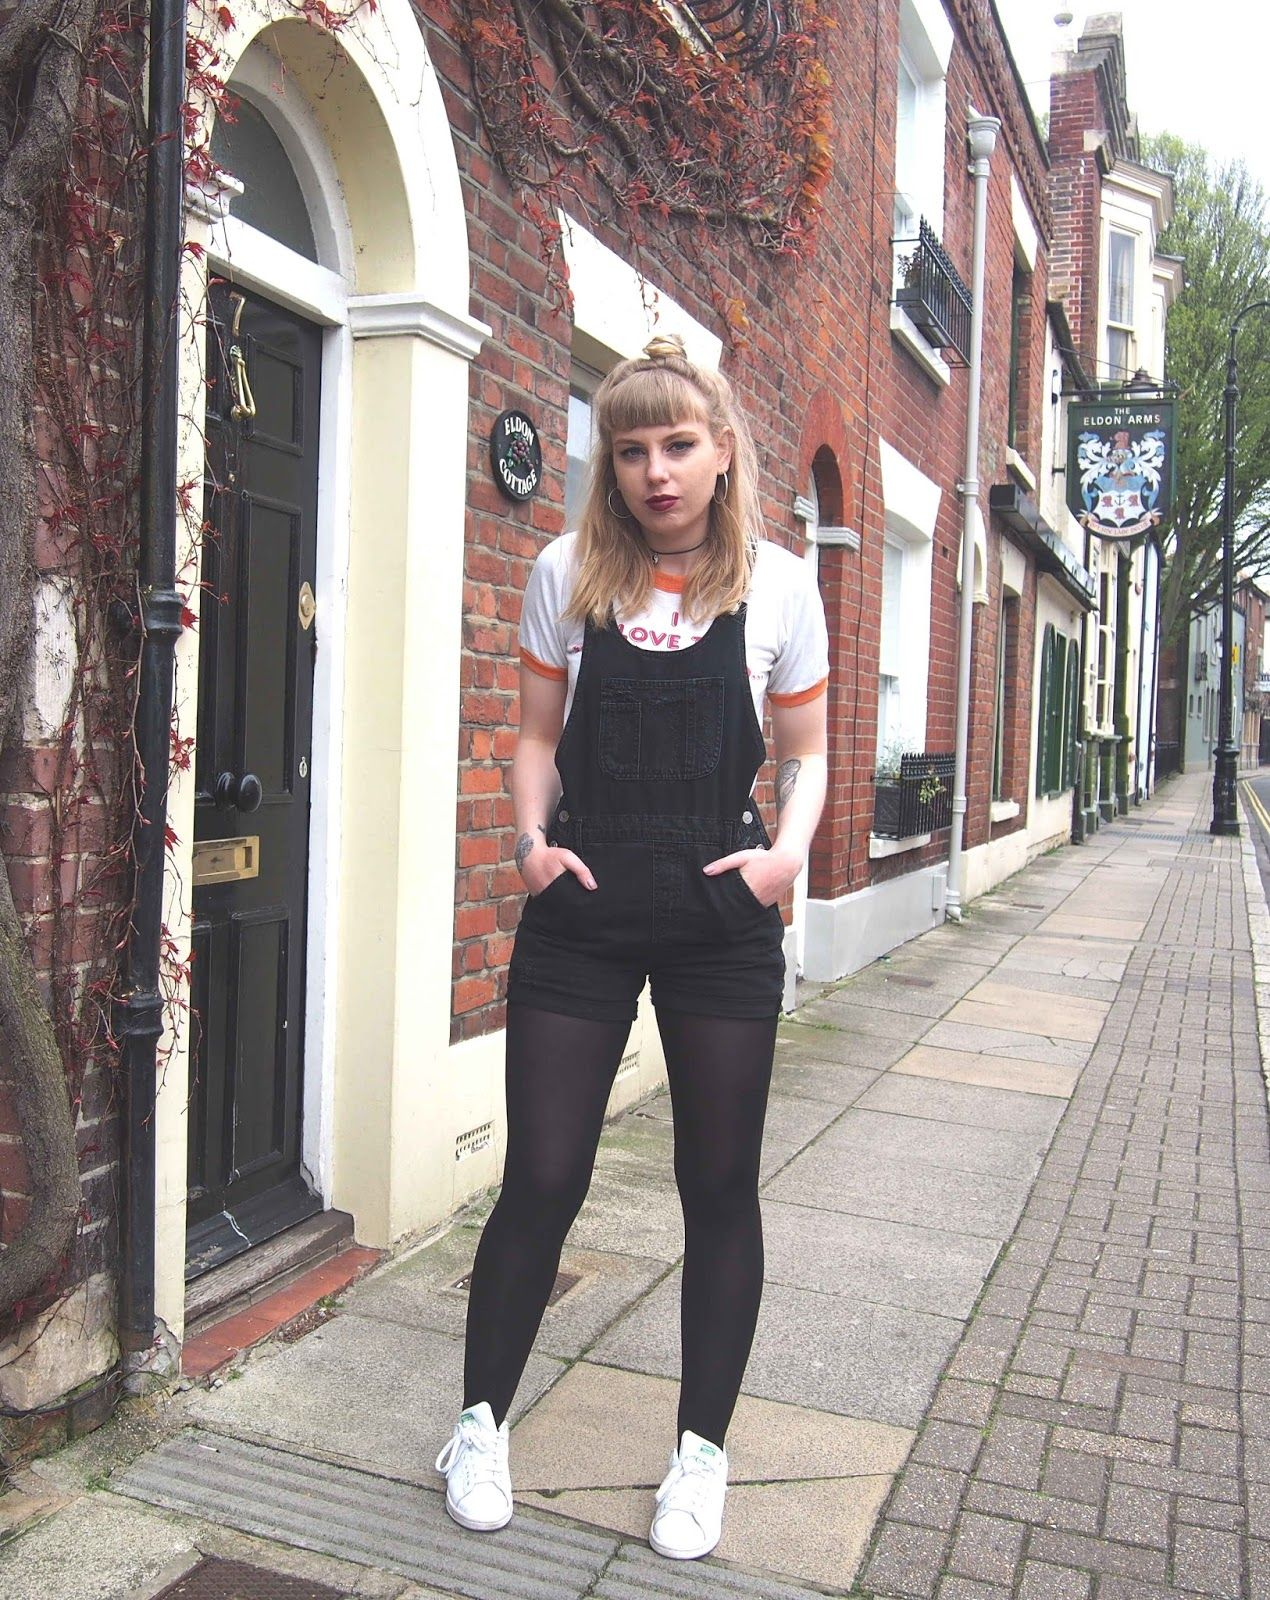 Black t shirt grunge - Black Distressed Dungarees Ringer Tee 70s T Shirt Spring Summer Outfit Inspiration